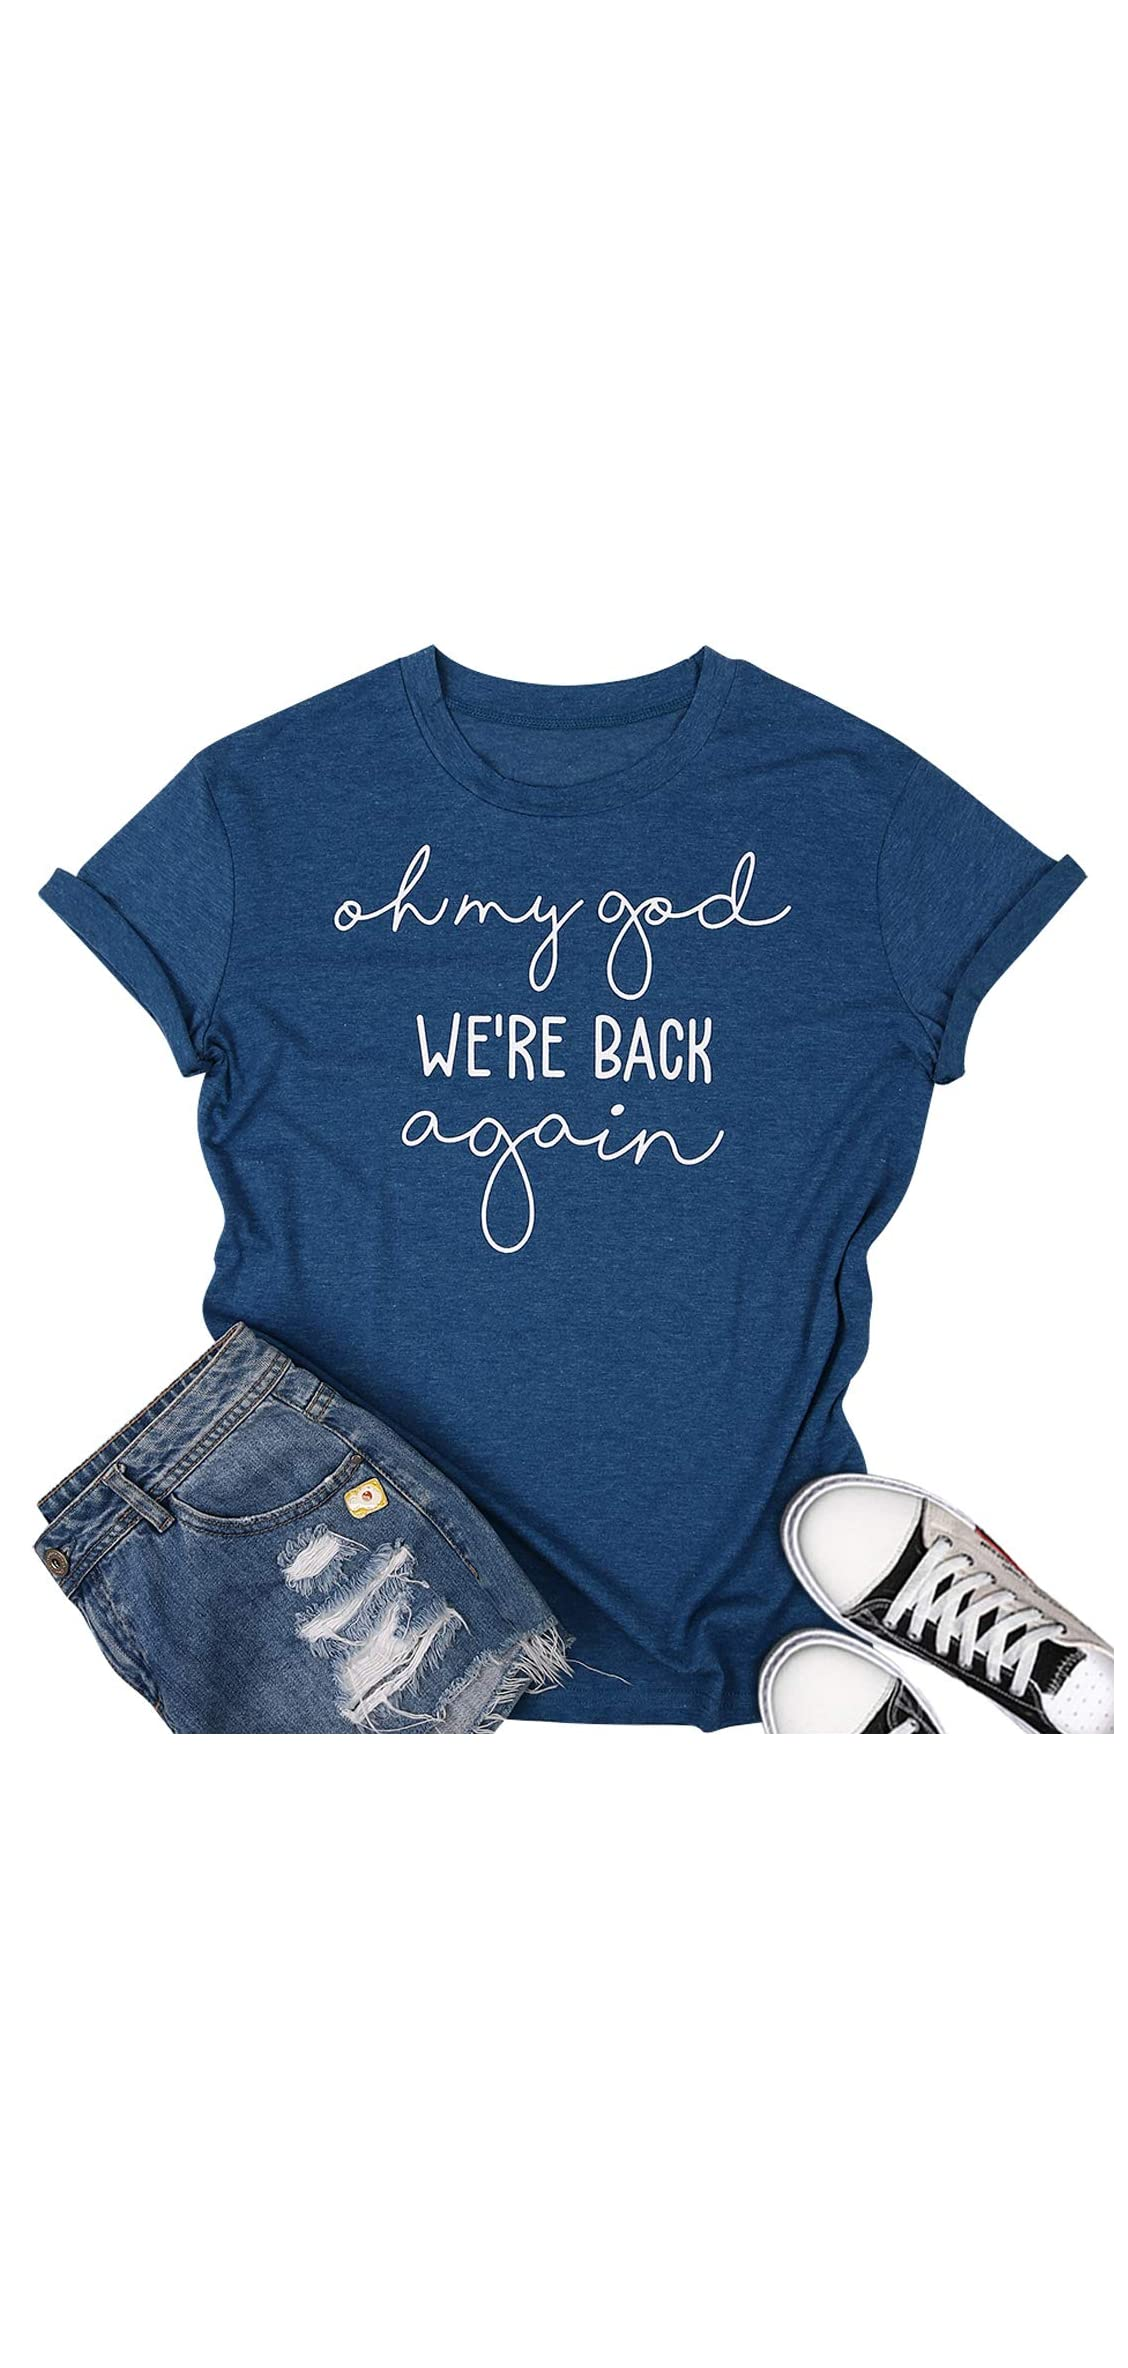 Oh My God We're Back Again T Shirt For Women Teen Girls Funny